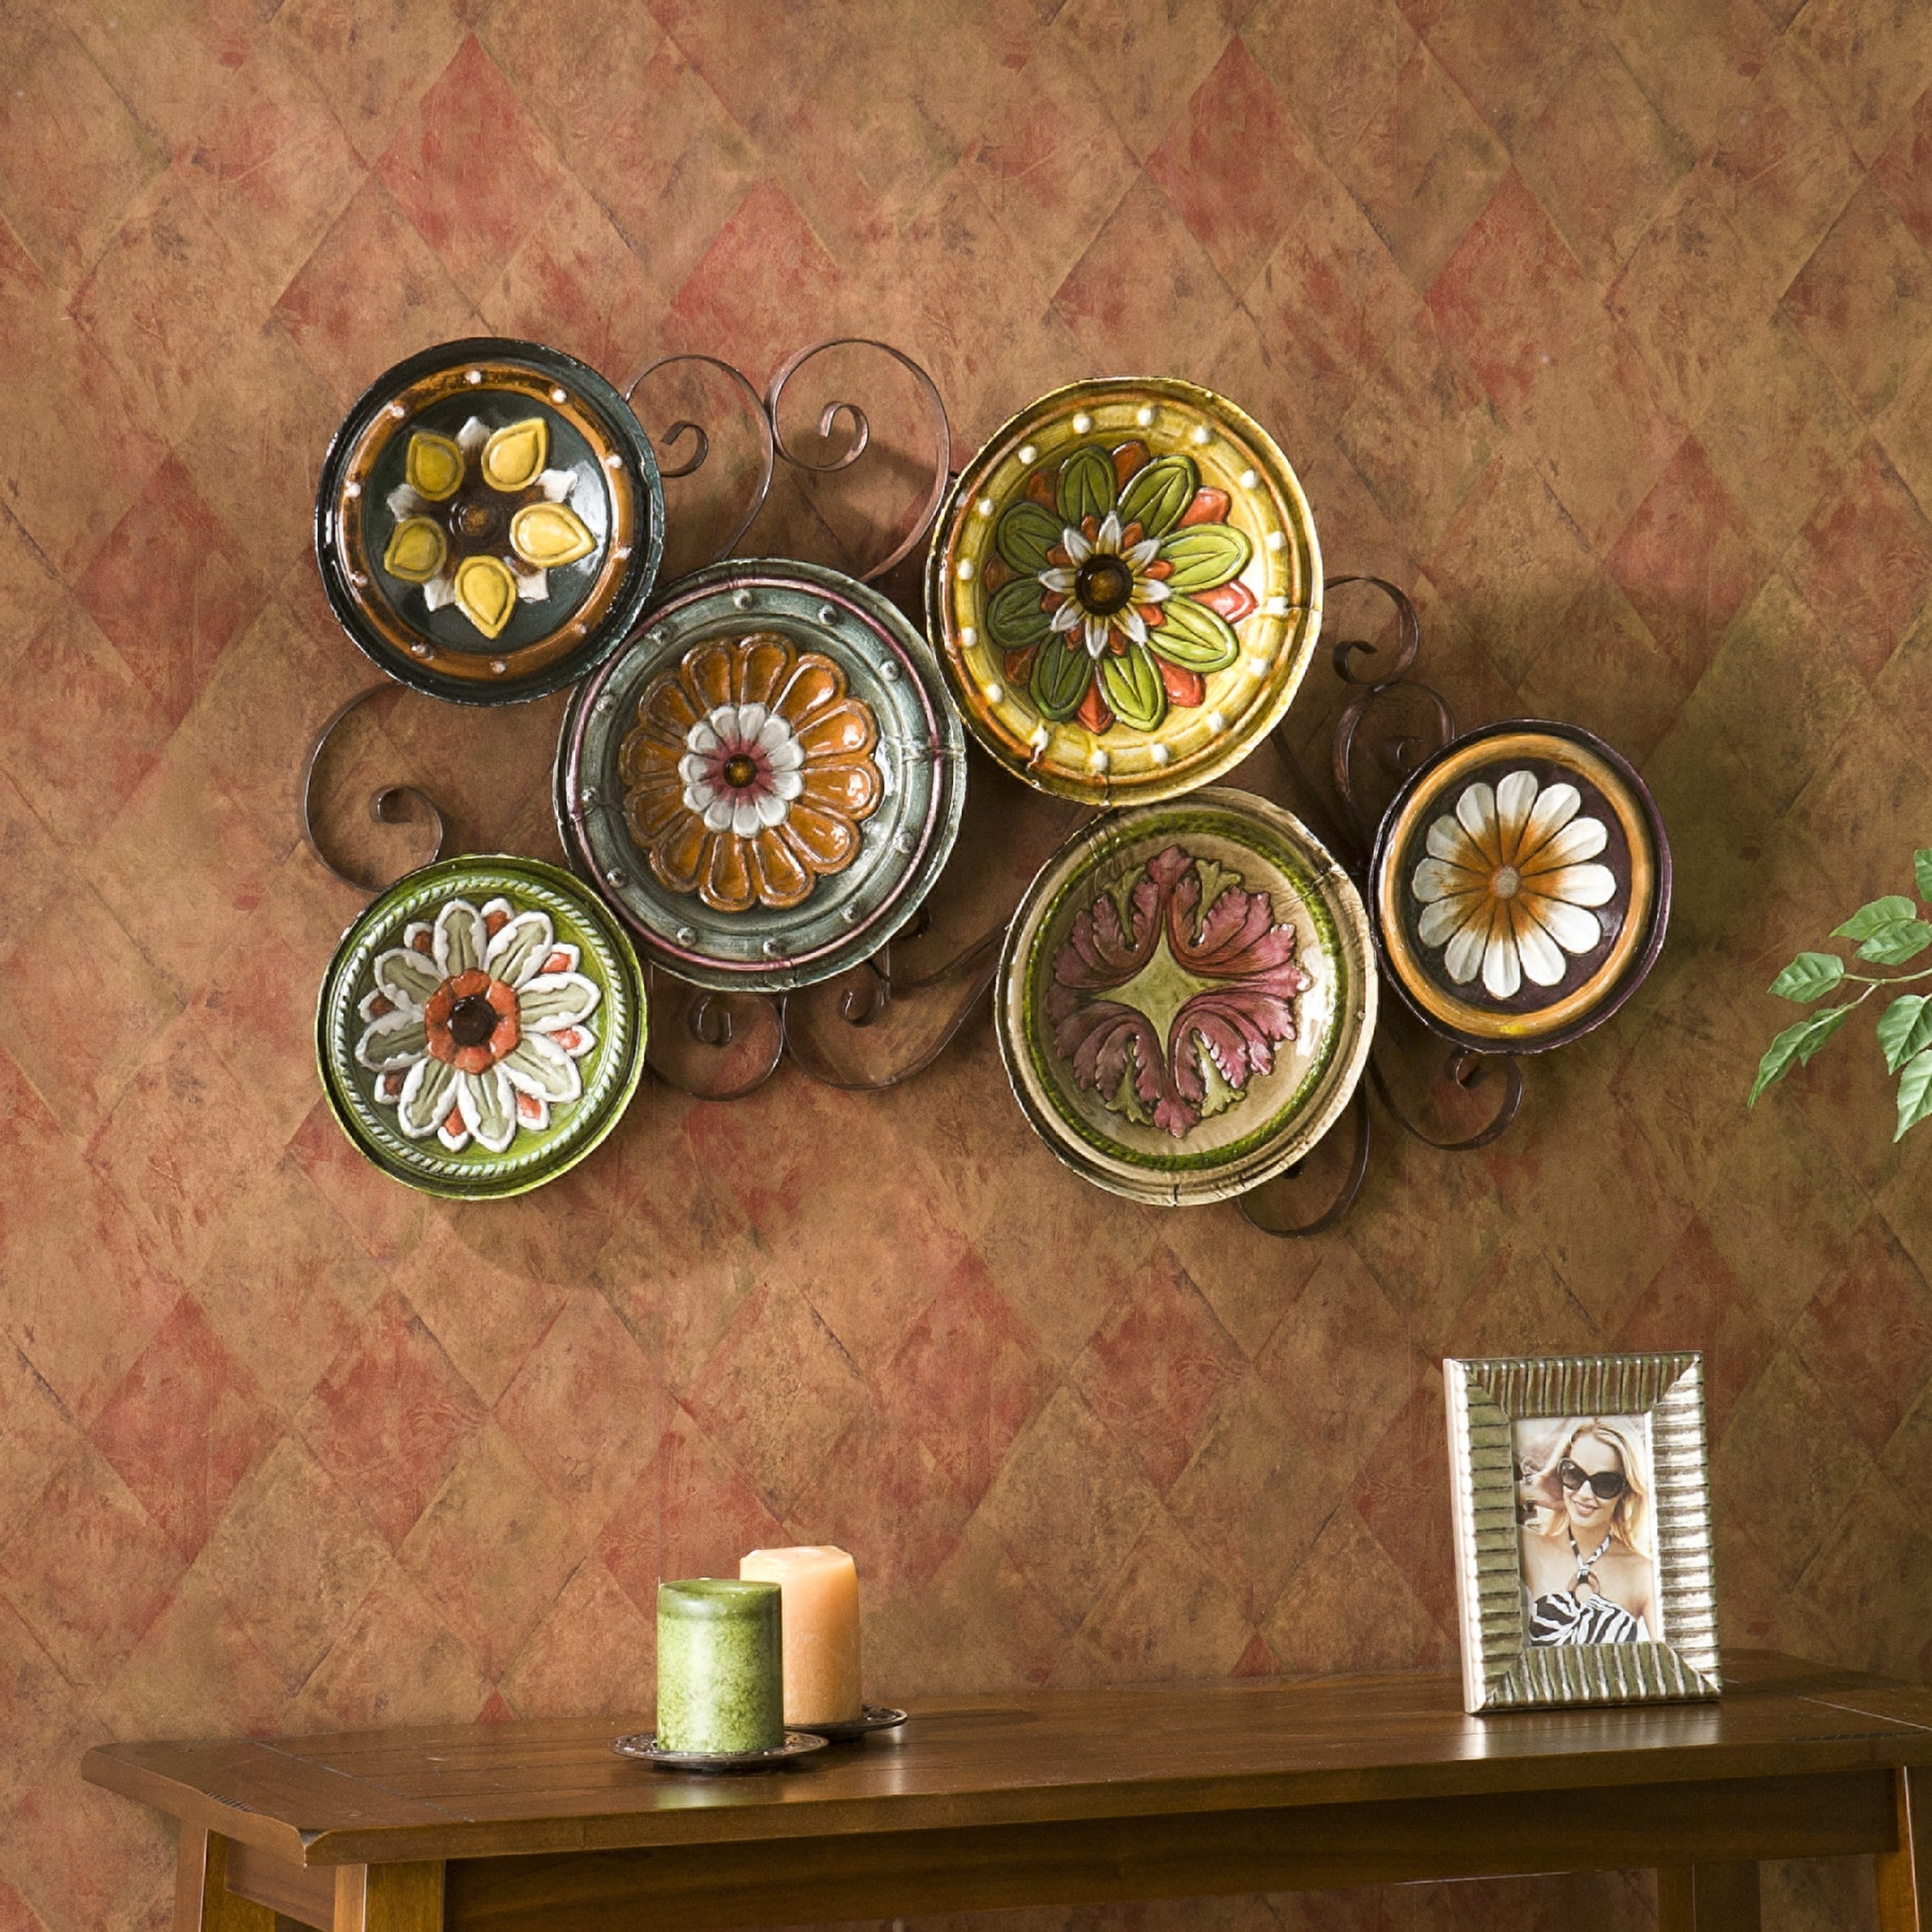 Plate Wall Art Harper Blvd Forli Scattered 6Piece Italian Plates Wall Art Set